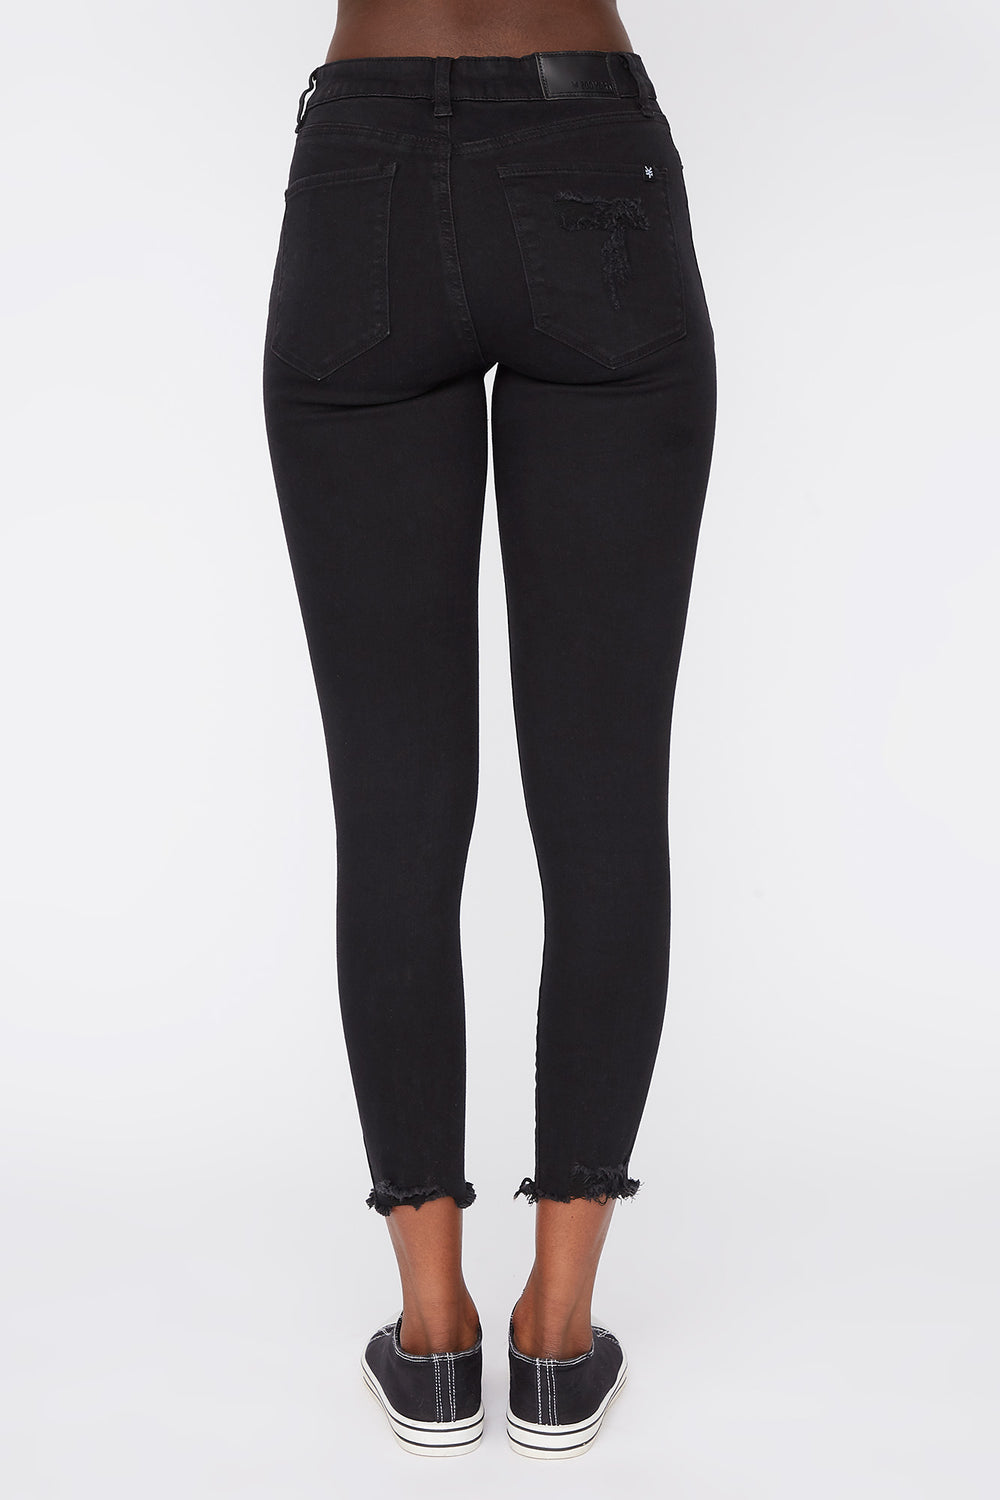 Zoo York Womens Cropped High Rise Jeans Black